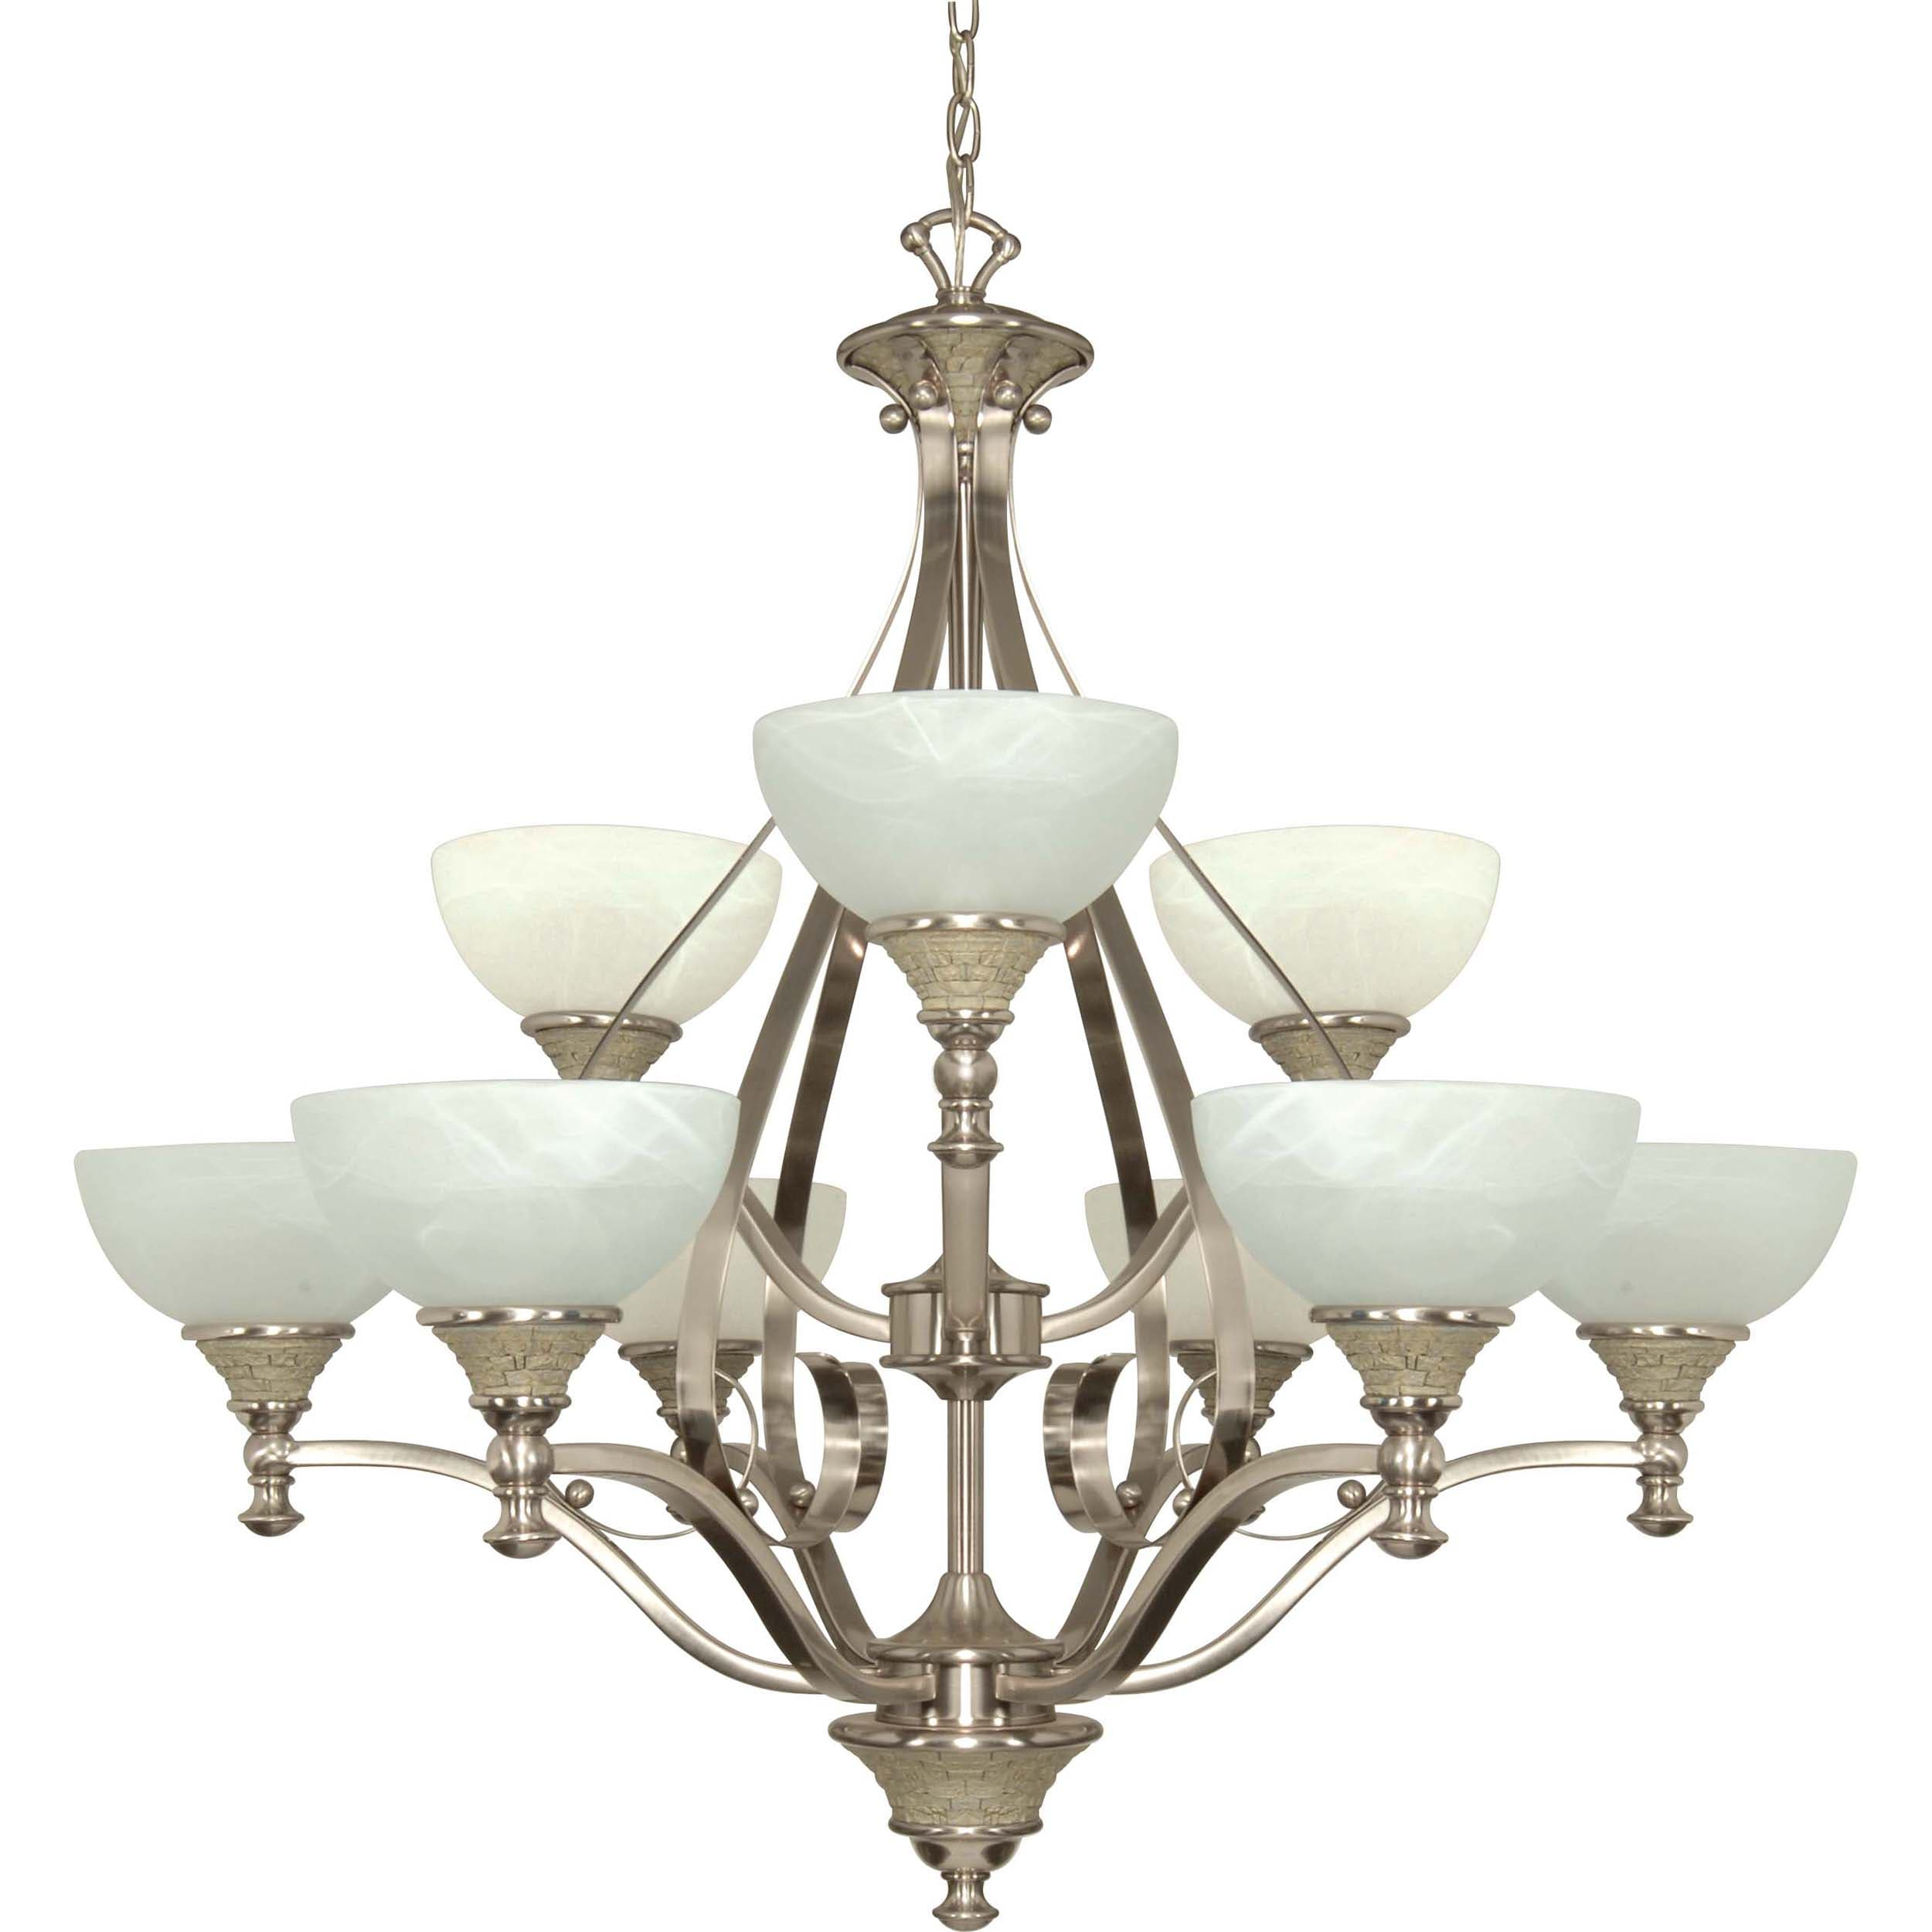 Rockport Milano 9 Light Chandelier Brushed Nickel with Alabaster Swirl Glass Shades